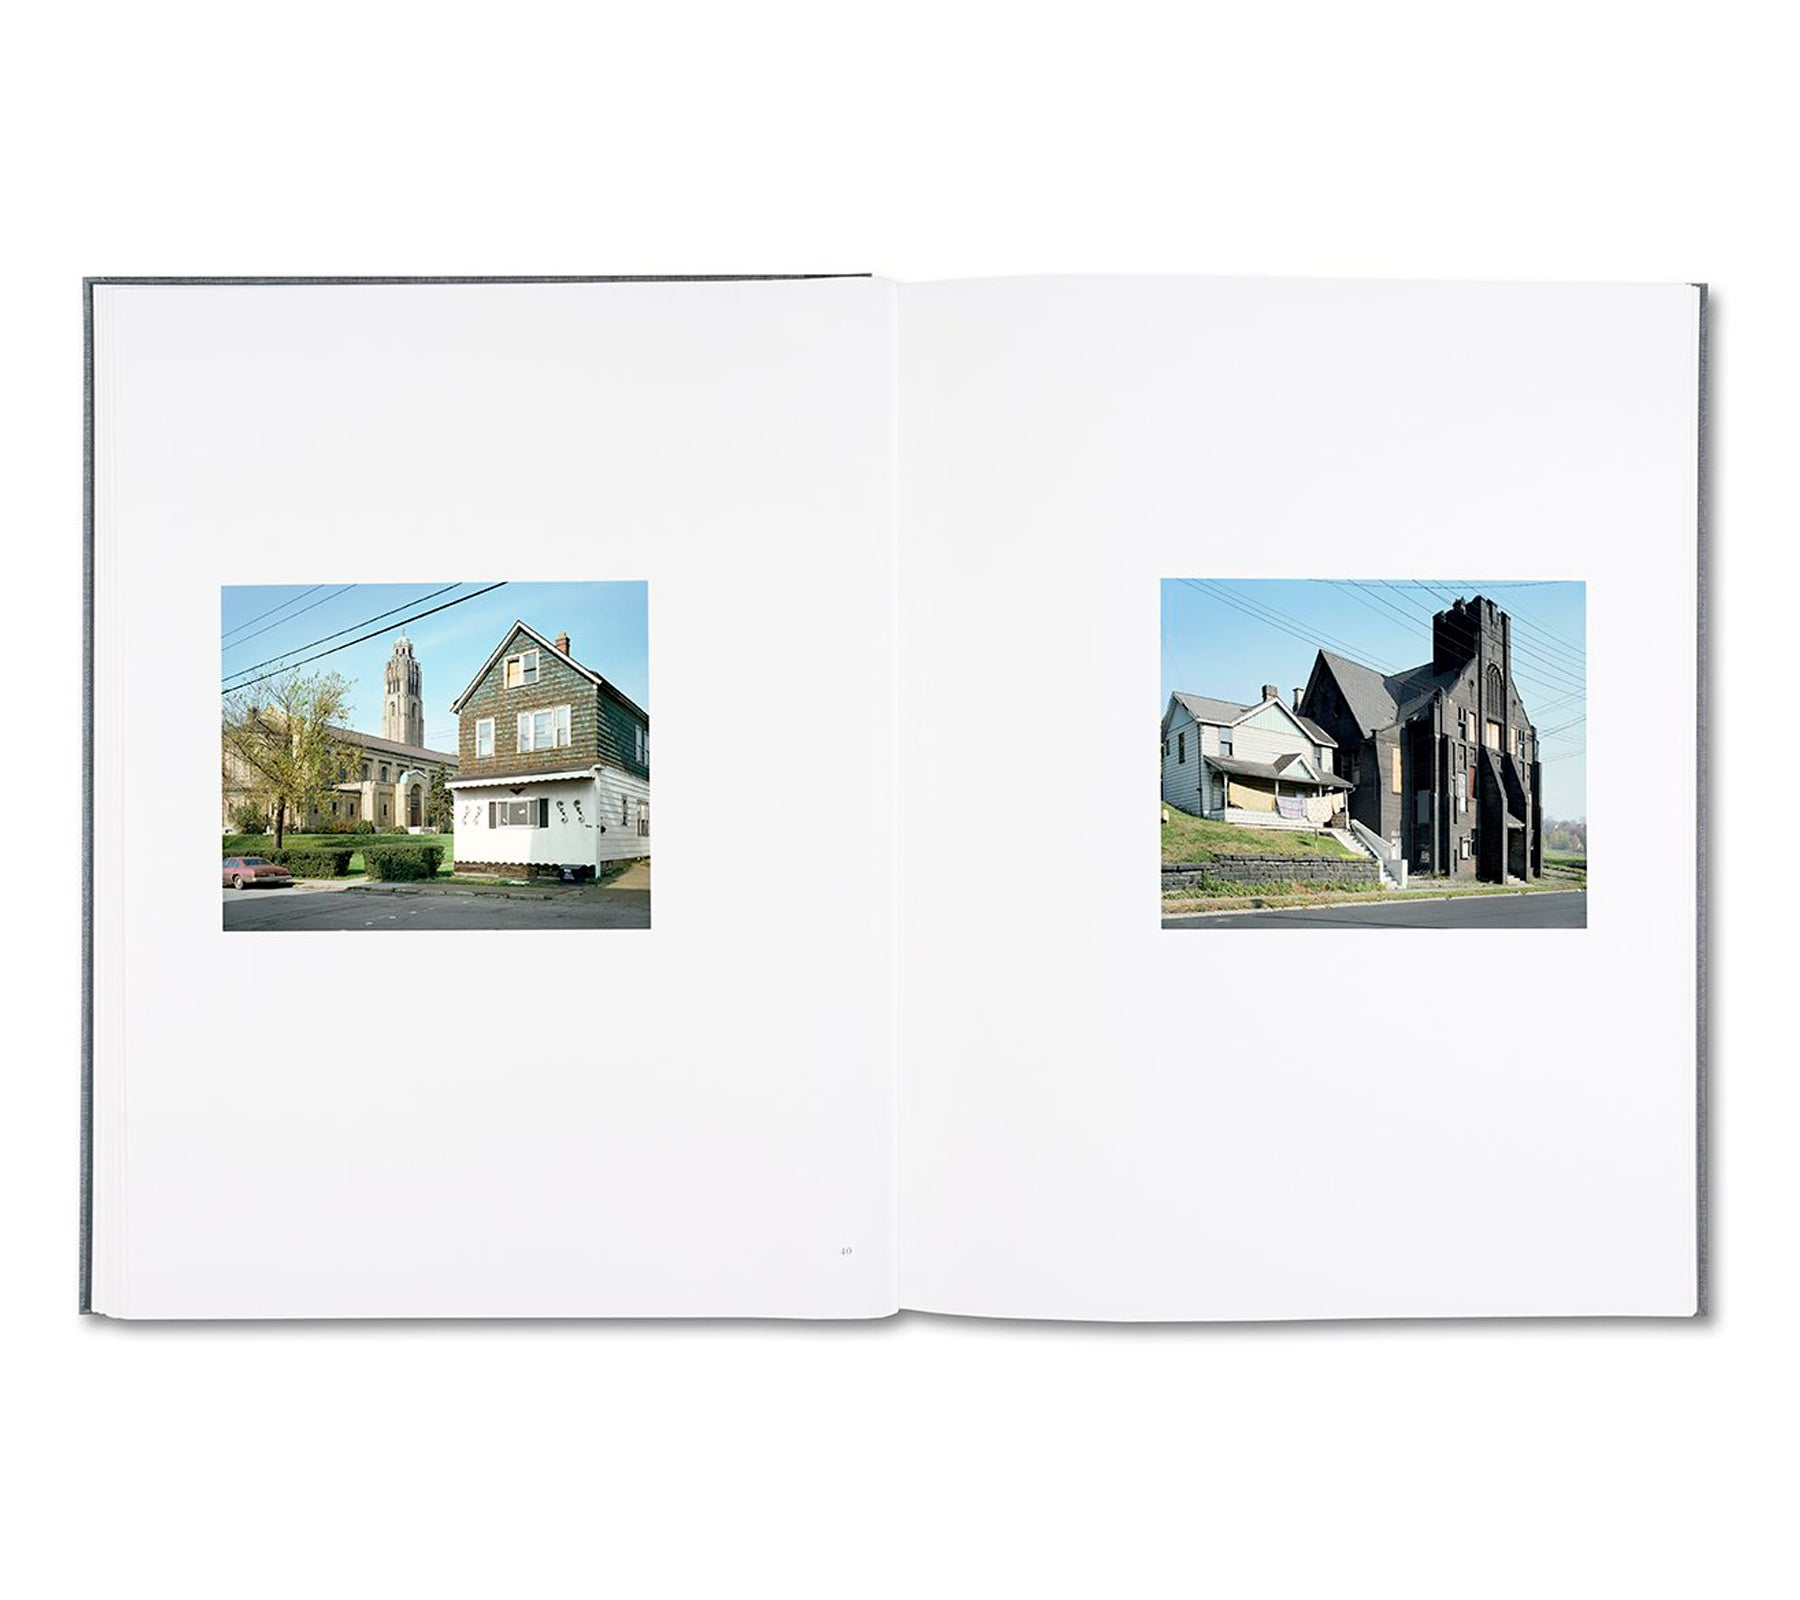 STEEL TOWN by Stephen Shore [SIGNED]